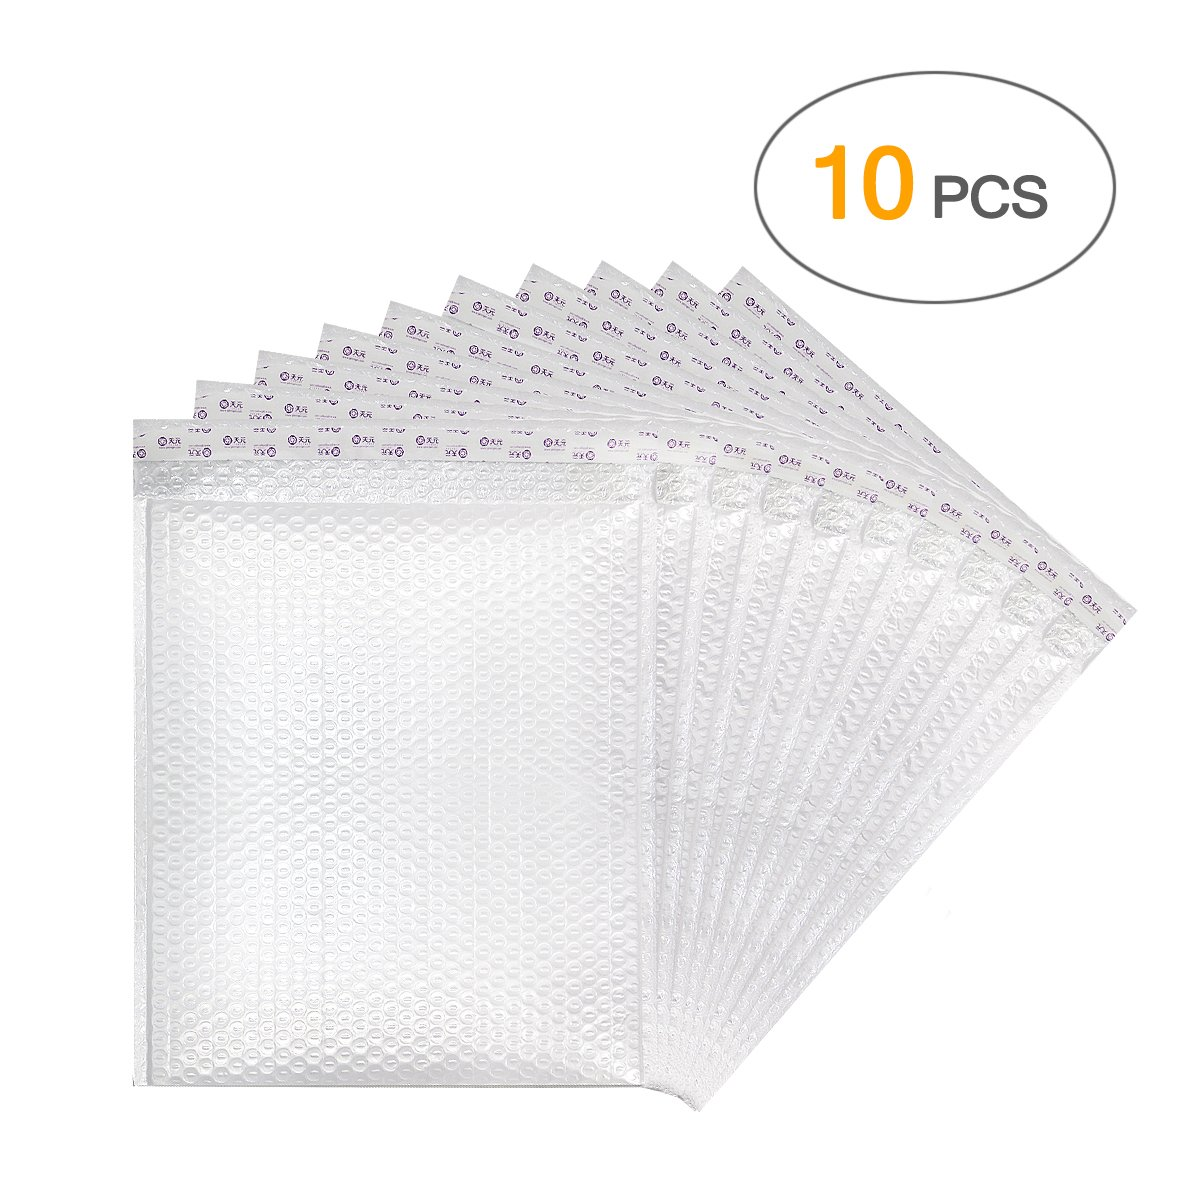 Poly Bubble Mailers Padded Envelopes Bubble Lined Shipping Envelope Mailing Bags with Self Adhesive Strip 10 Pcs(17 x 14'' /440 x 350mm)